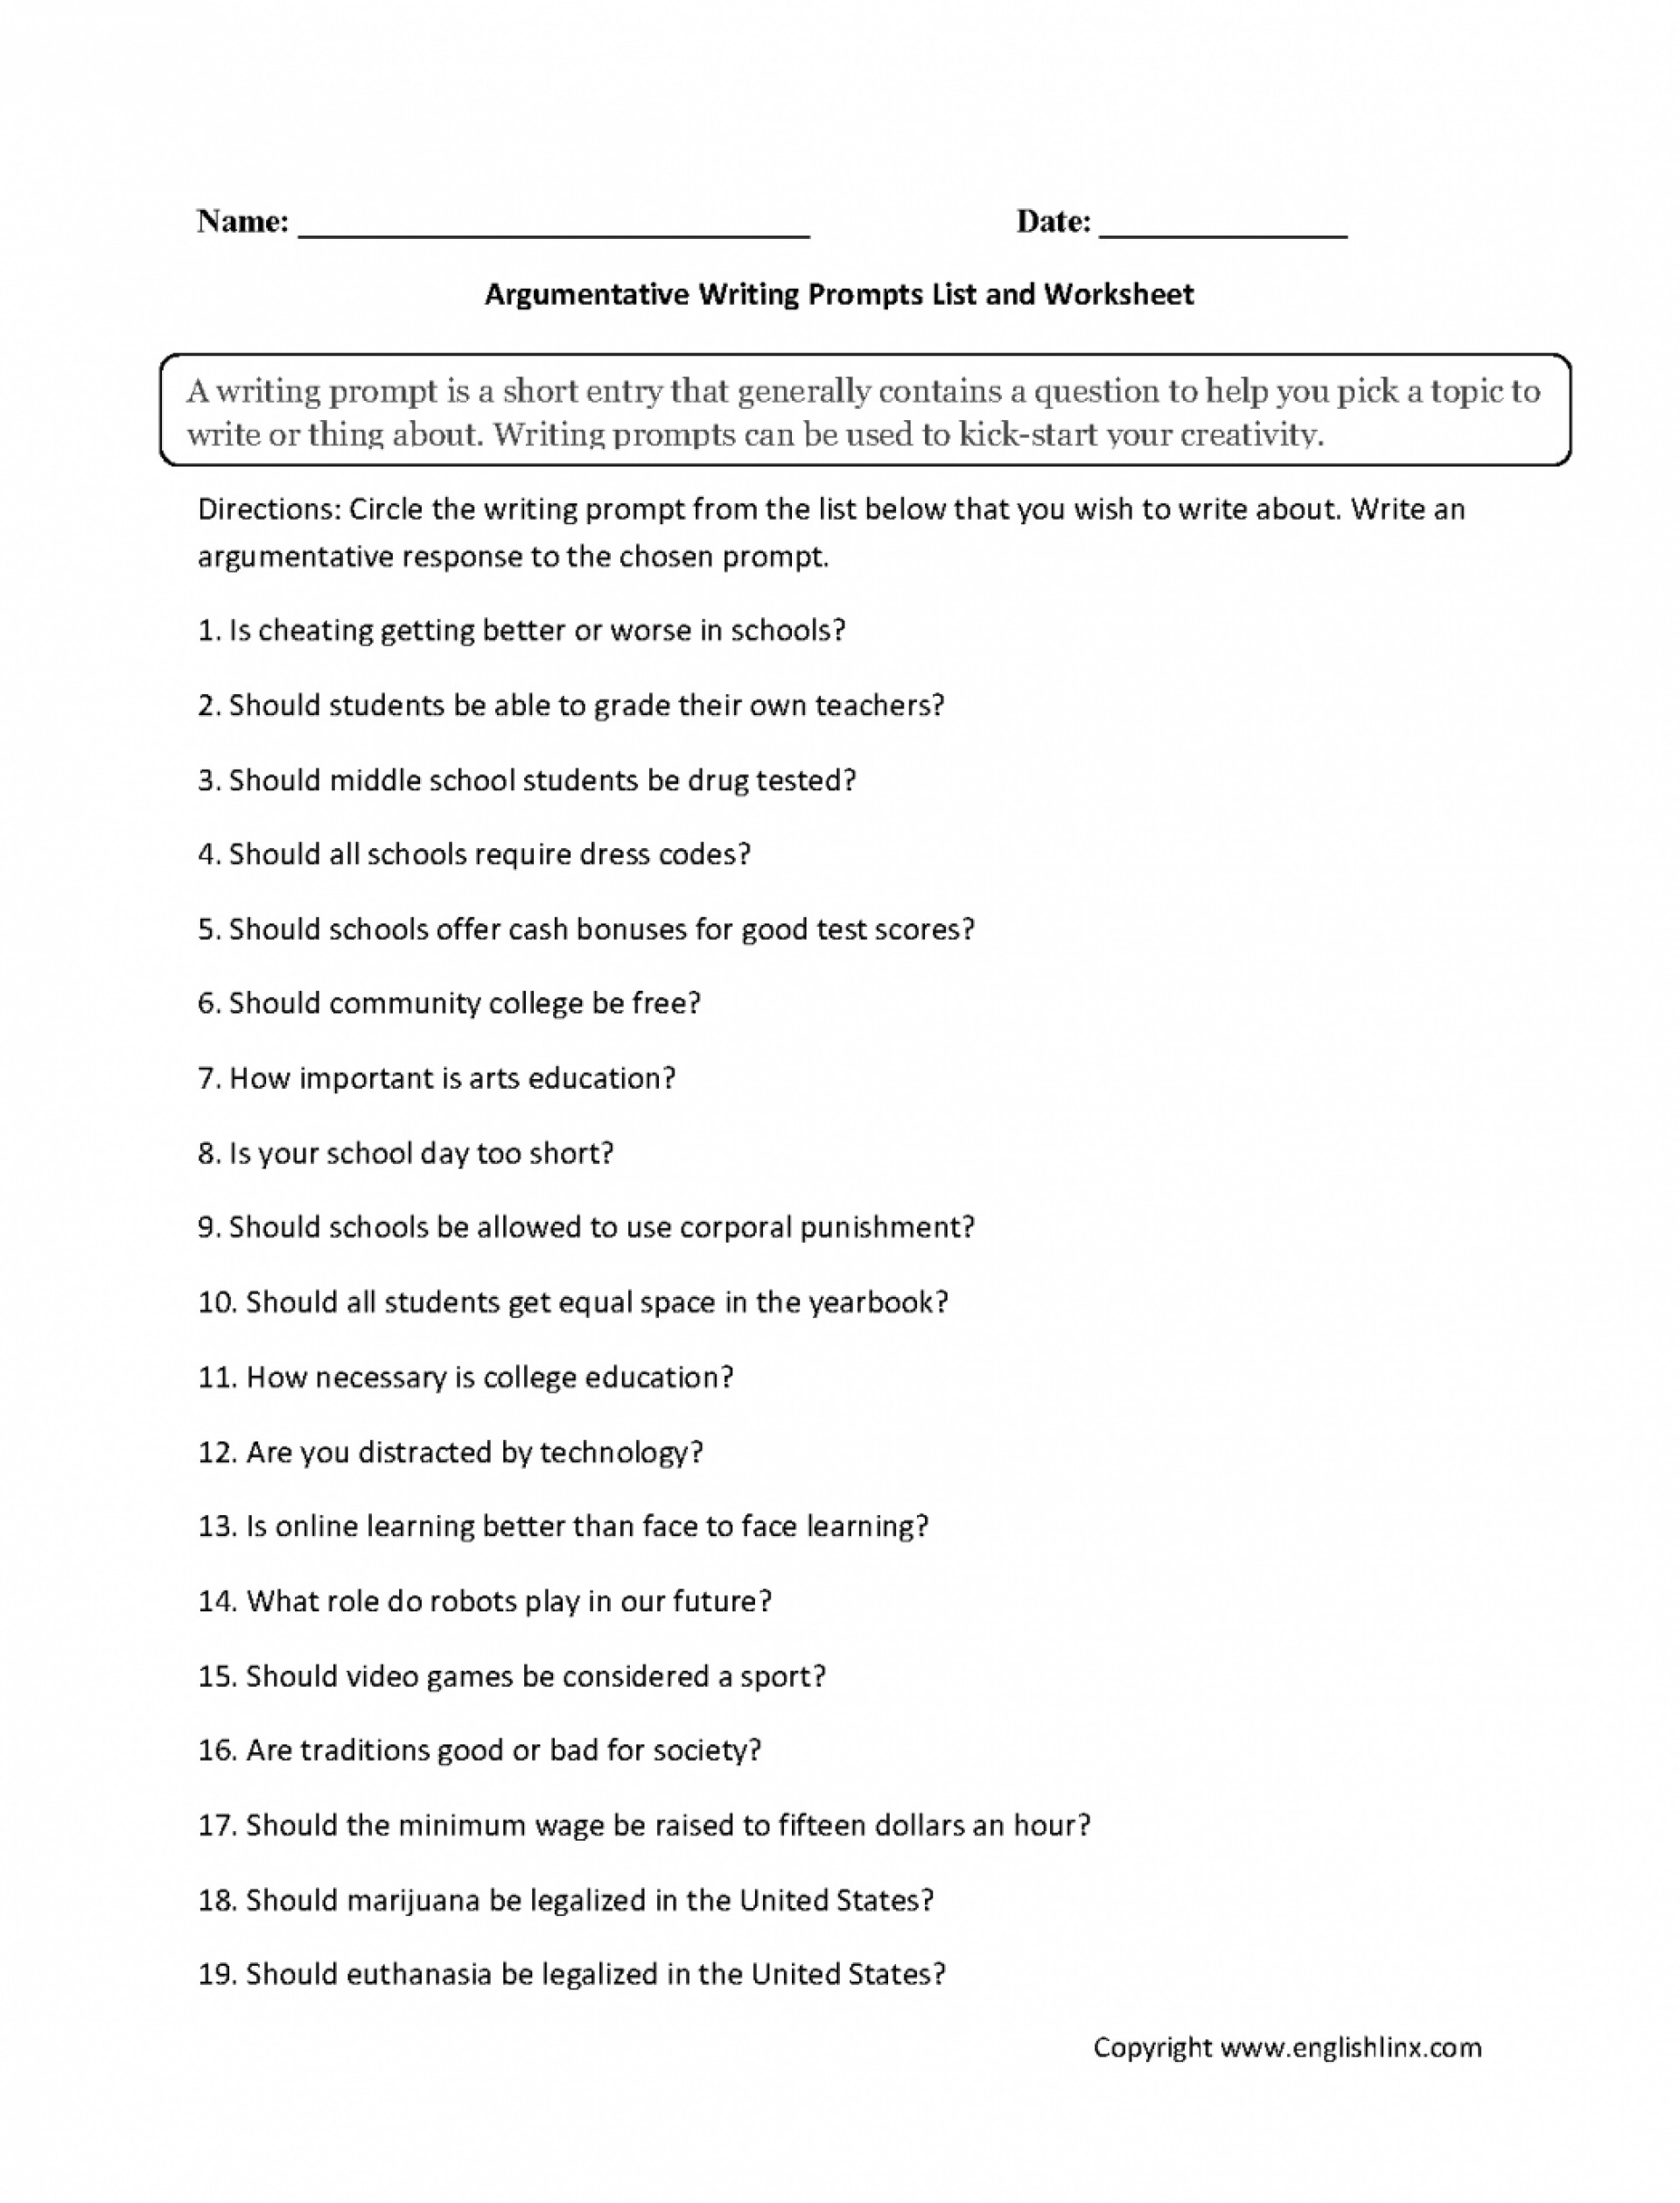 002 Essay Example Argument Prompts Goal Blockety Co Argumentative Topics Writing List Work For High School Subjects About Animals On Racism College Sports Middle Rare Persuasive Students Unique 6th Grade 1920